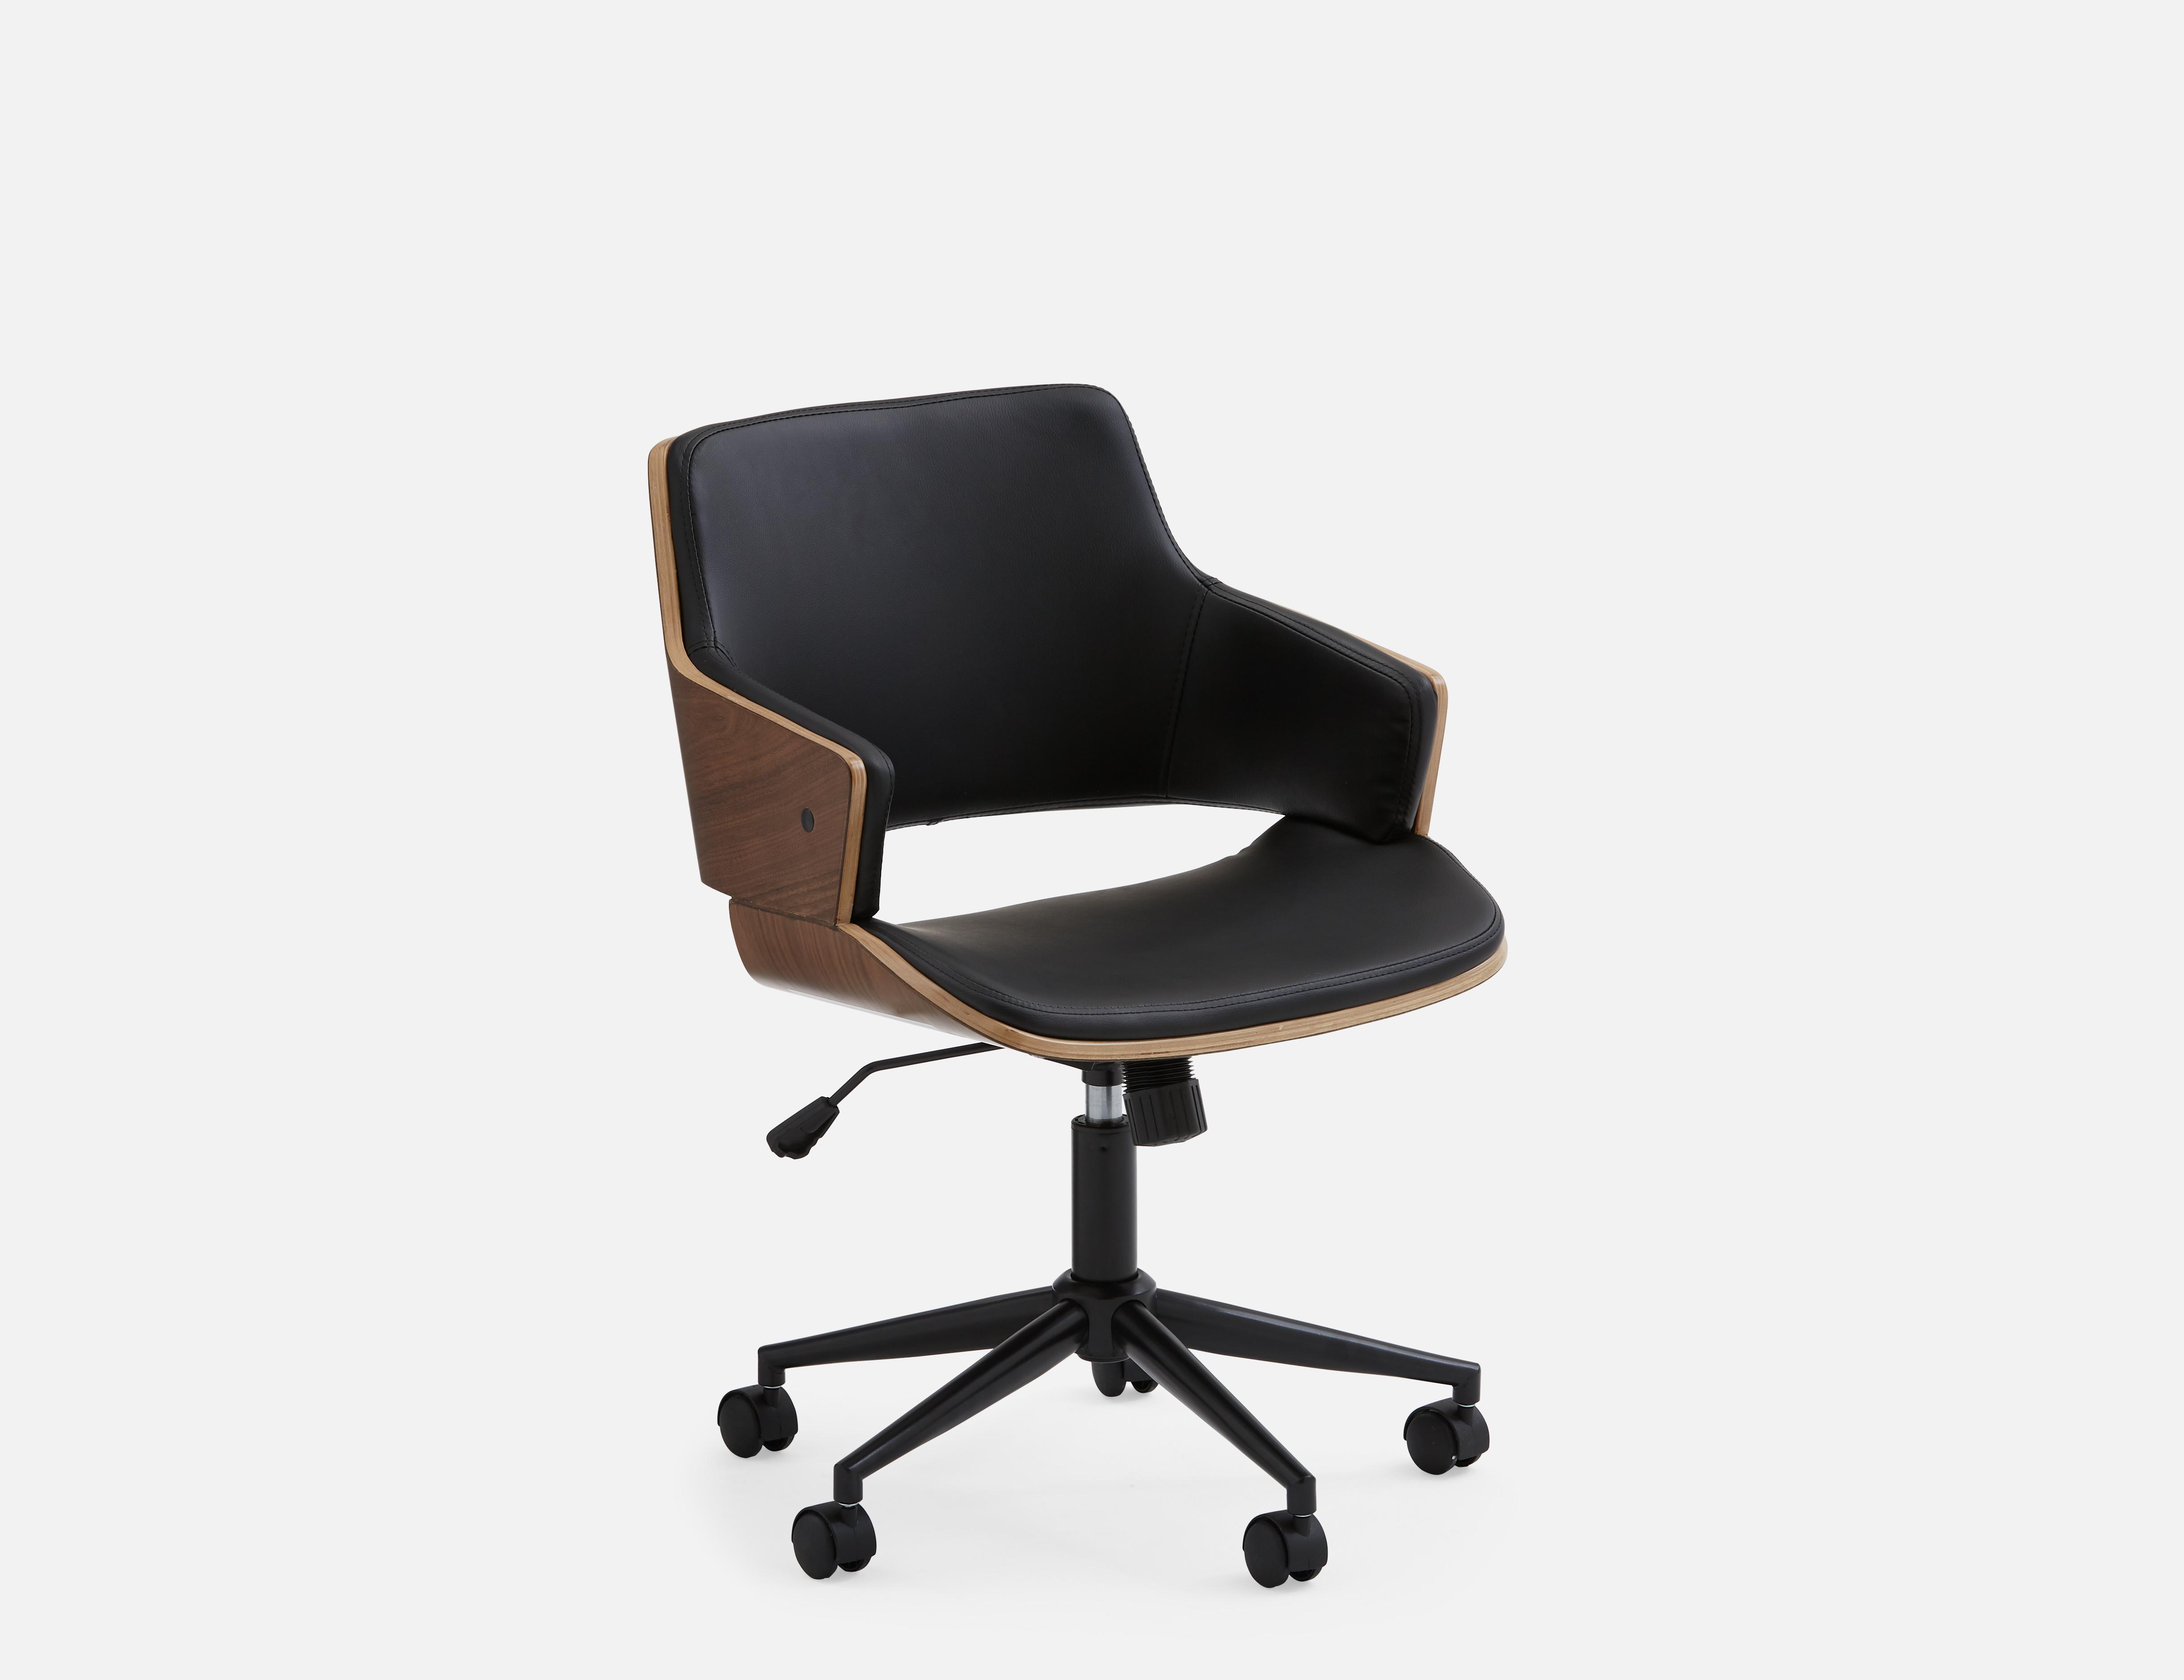 Black Office Chair Structube Galt Black Office Chair Office